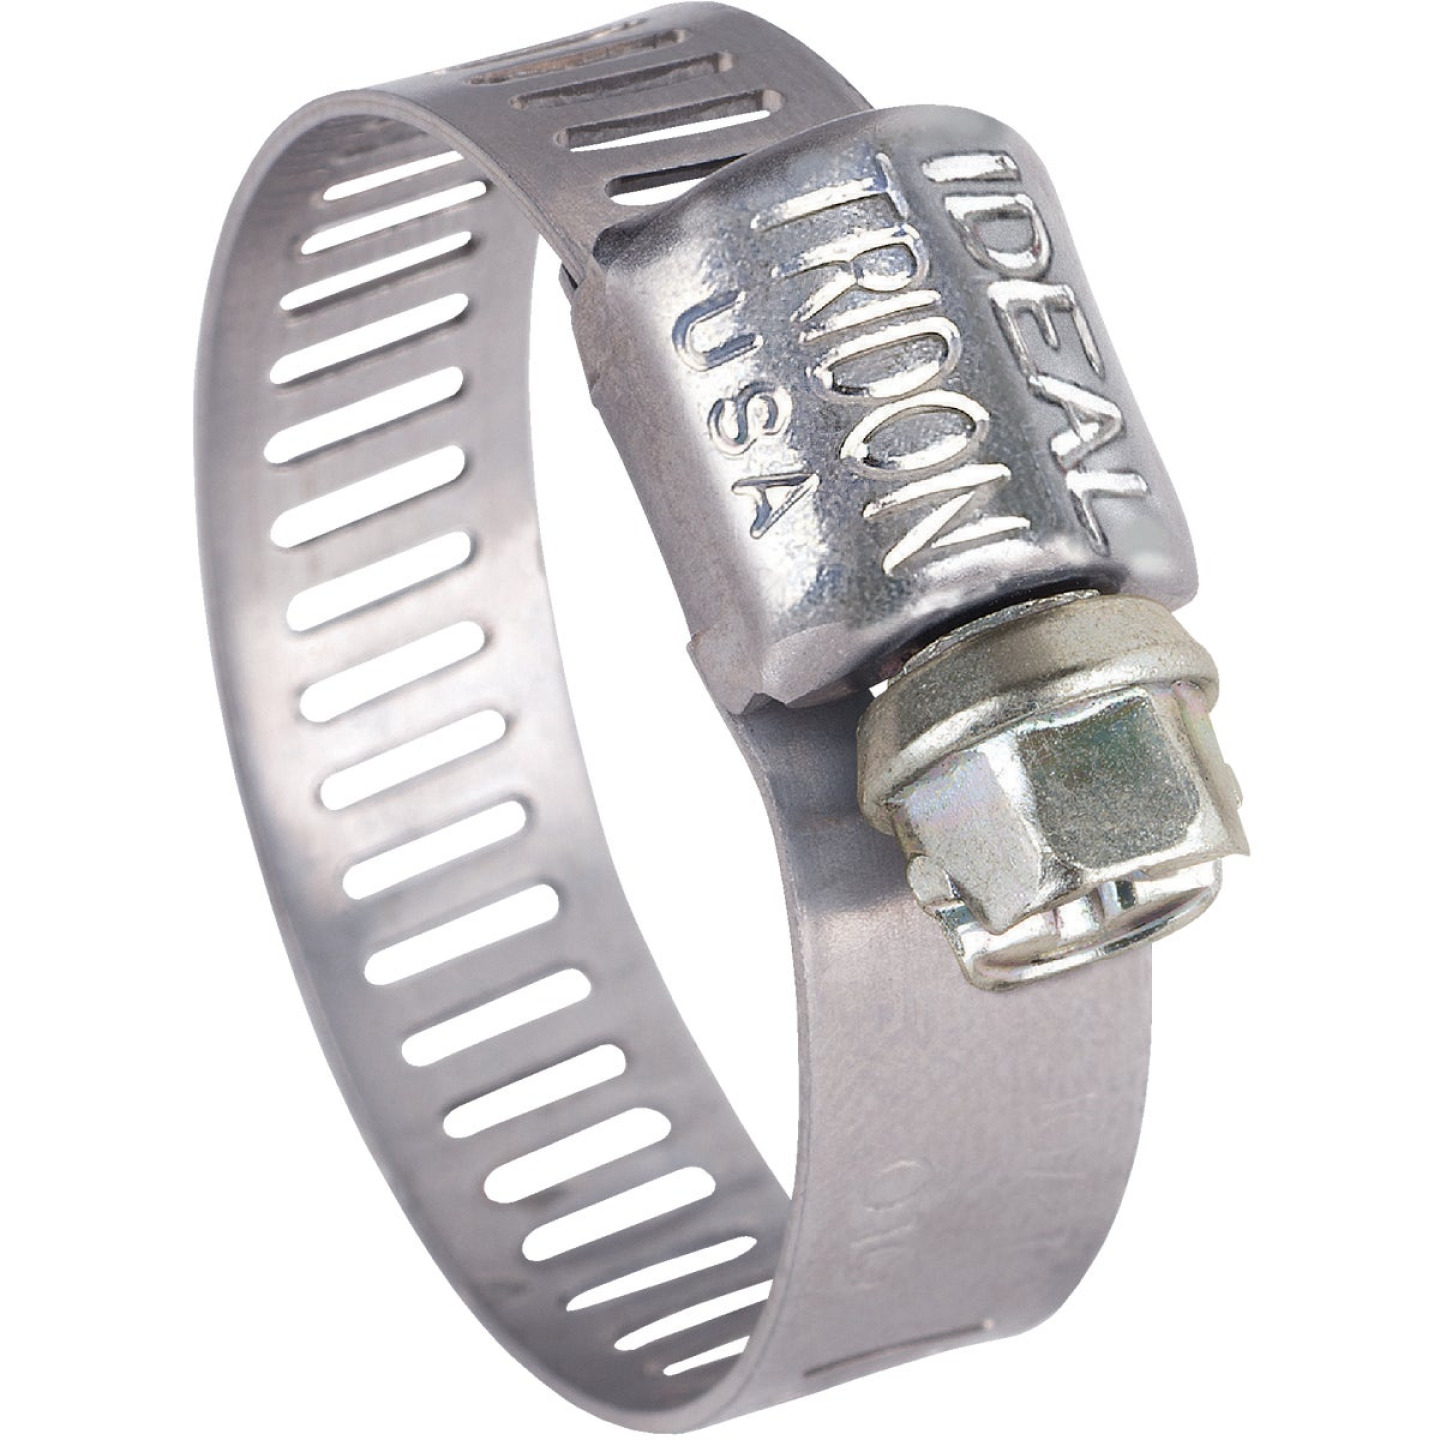 Ideal 5/16 In. - 5/8 In. All Stainless Steel Micro-Gear Hose Clamp Image 1